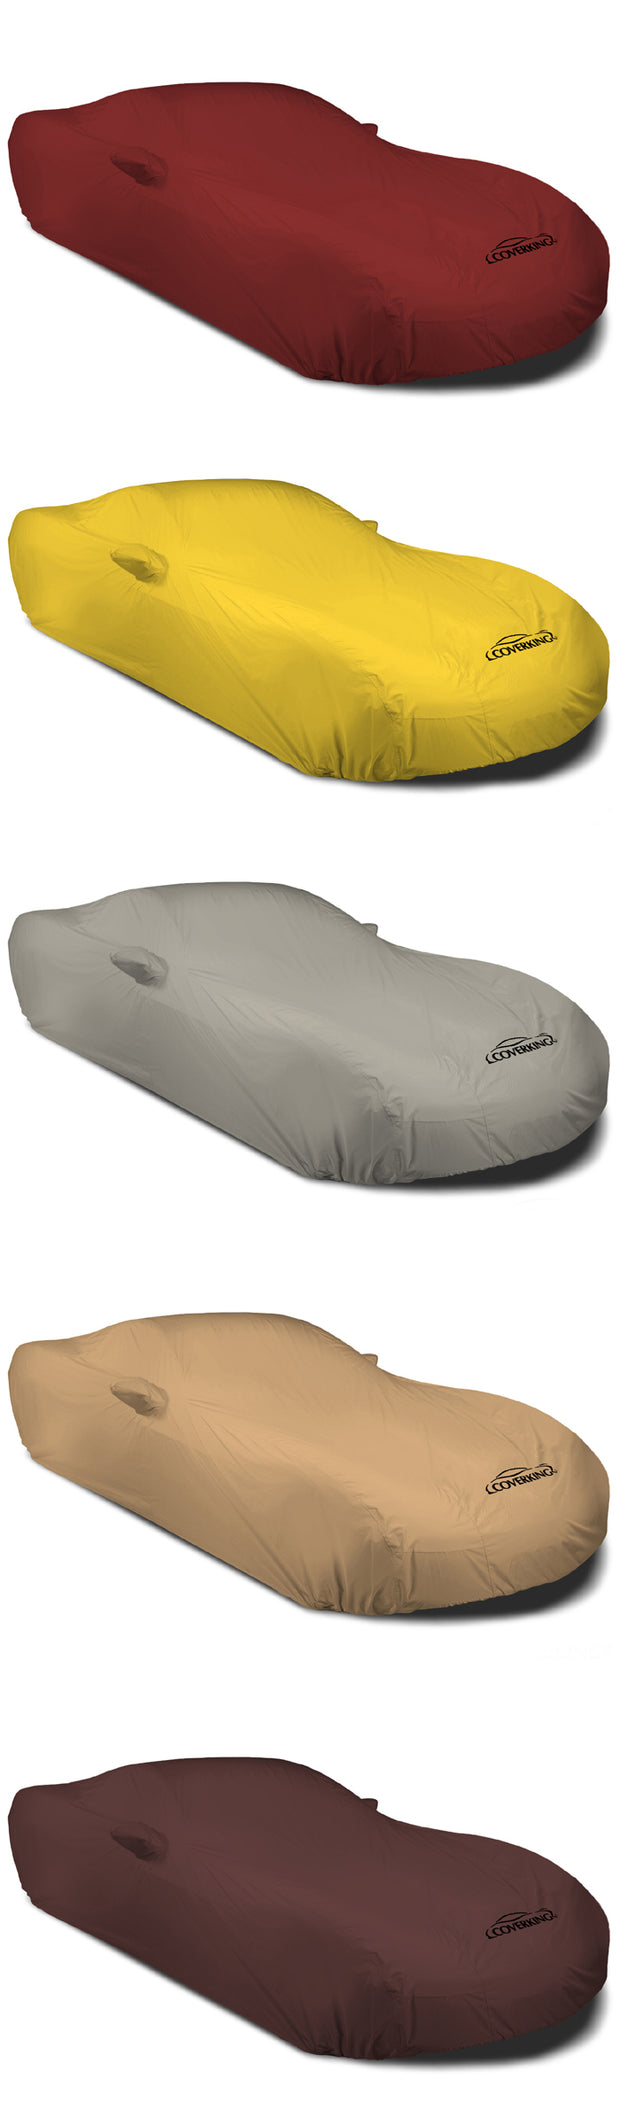 C8 Corvette Stingray Car cover from Coverking stormproof